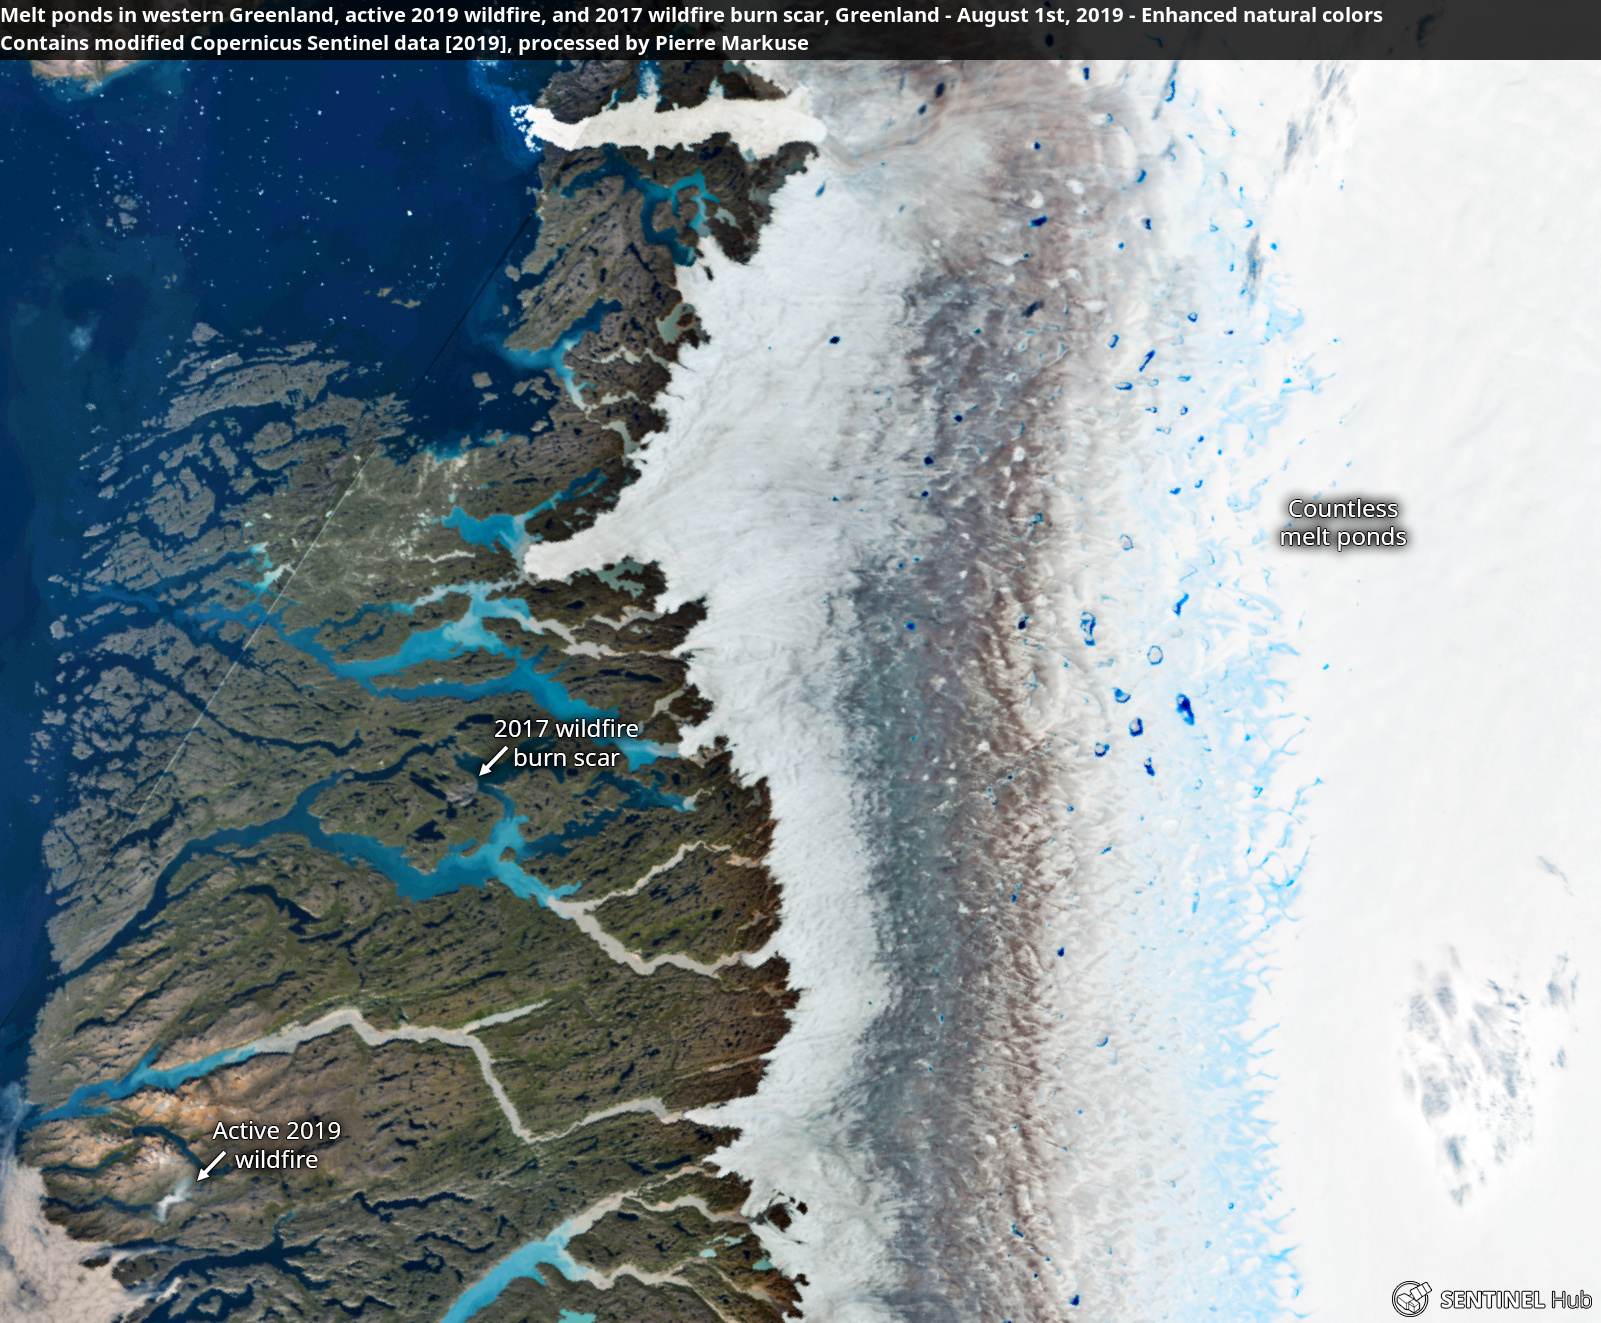 desc:Melt ponds in western Greenland, active 2019 wildfire, and 2017 wildfire burn scar, Greenland - August 1st, 2019 Copernicus/Pierre Markuse